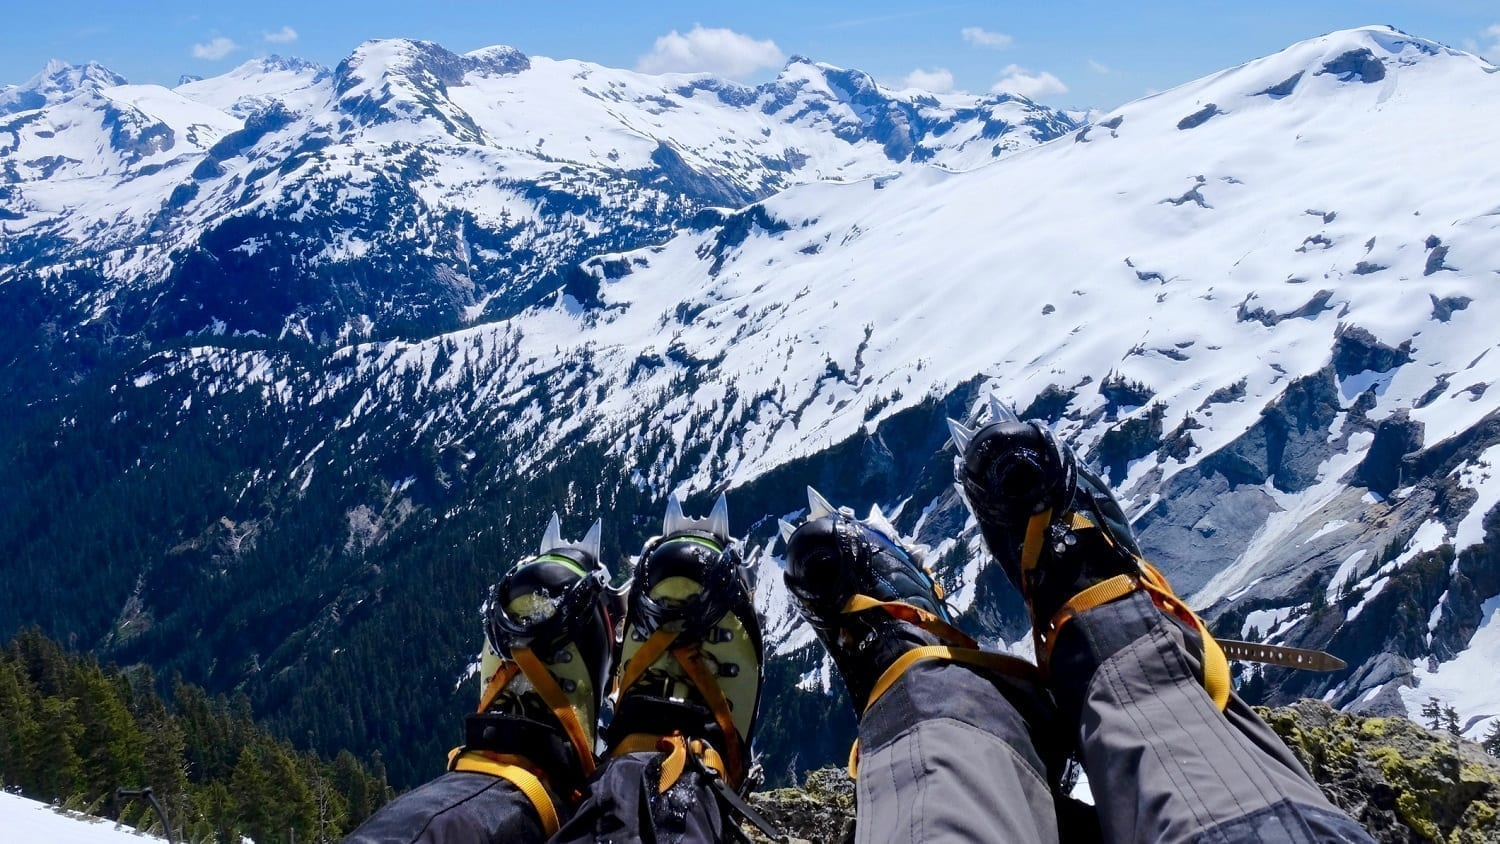 Crampone-clad feet in front of a view of snow covered North Cascade Mountains: Photo 73296343 © Aquamarine4 | Dreamstime.com